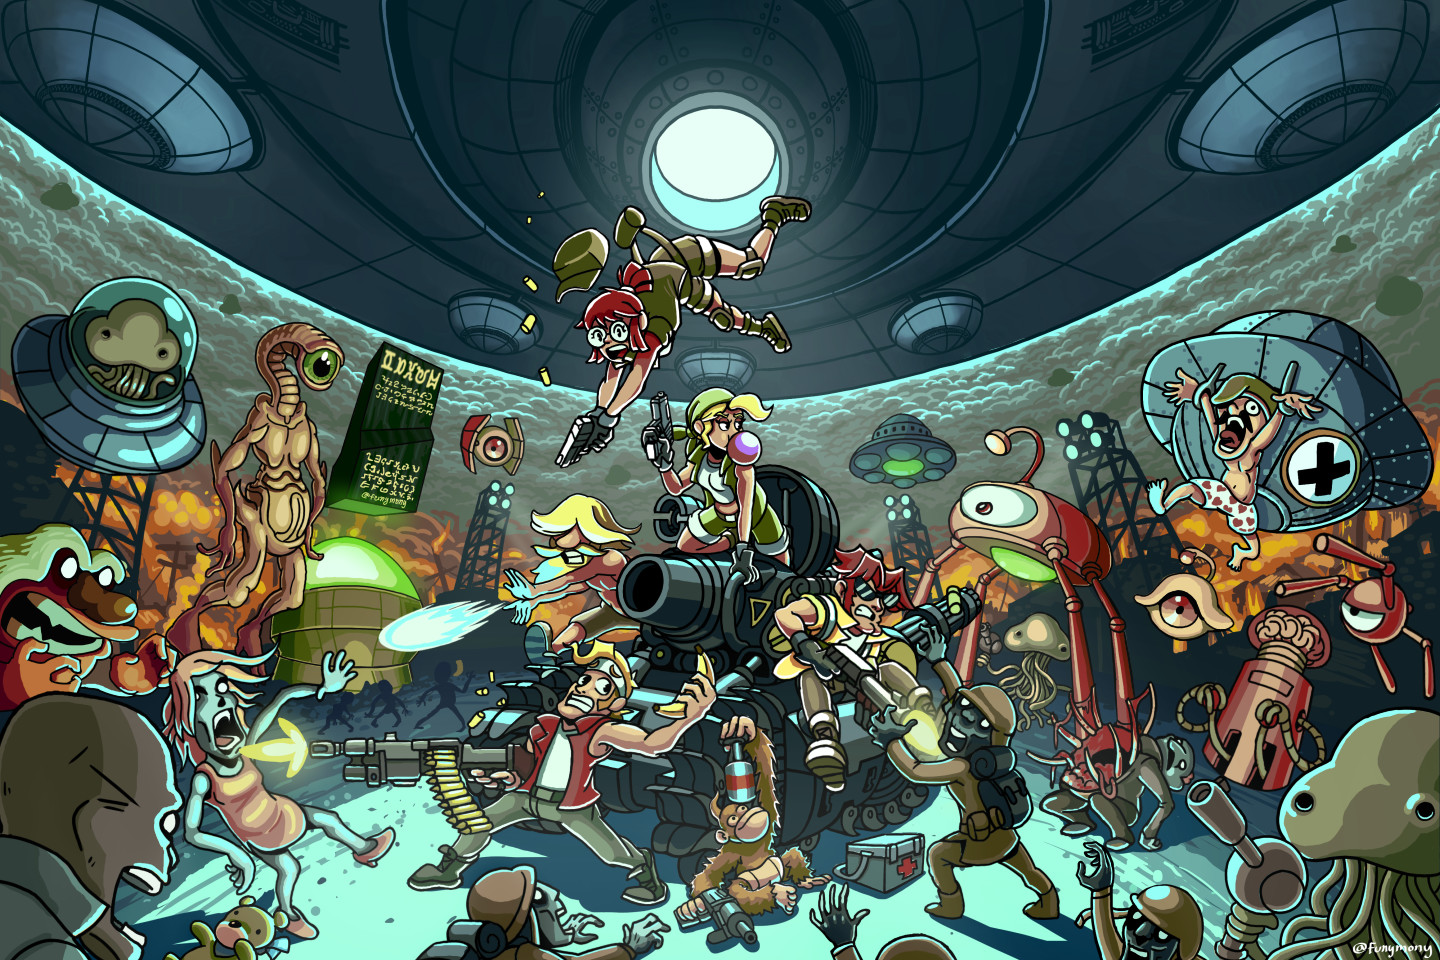 I love all the details and sprites in my favorite game, Metal Slug 3. I wanted to find a cool wallpaper that captures the spirit of the series but I couldn't find one. So I made my own!